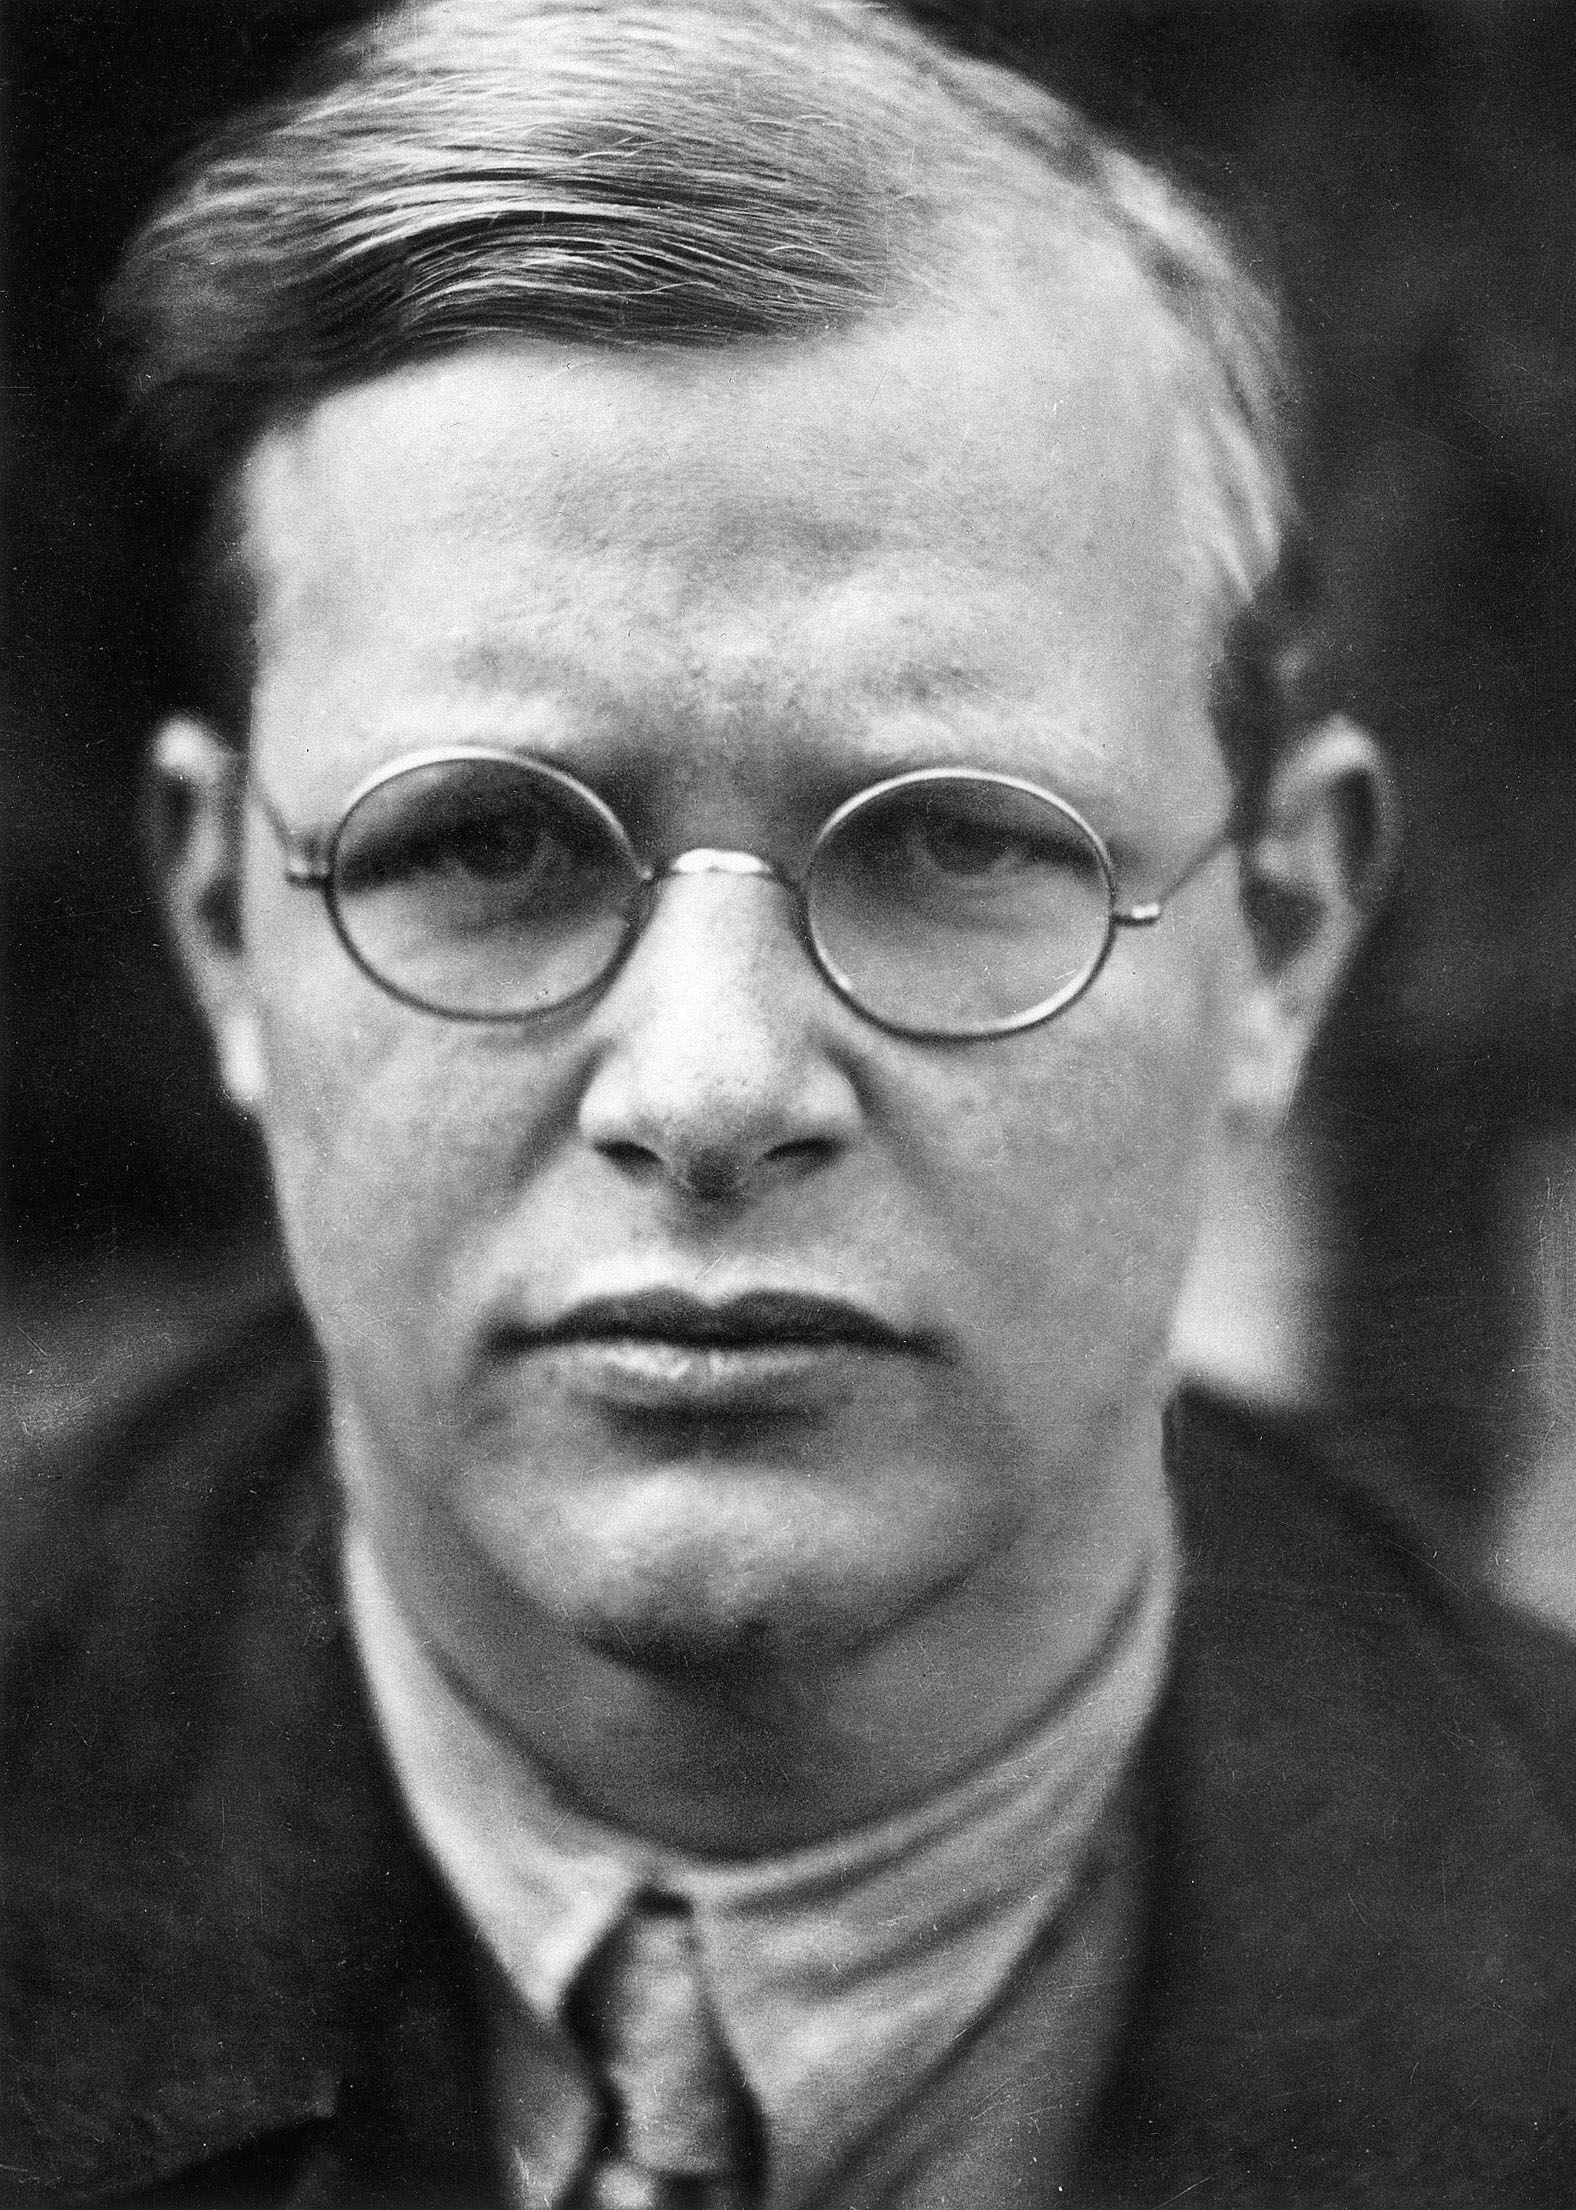 bonhoeffer dissertation Bonhoeffer and the jews dietrich had completed his phd dissertation on the this thesis and his post-doctoral thesis, act and being, were bonhoeffer's.